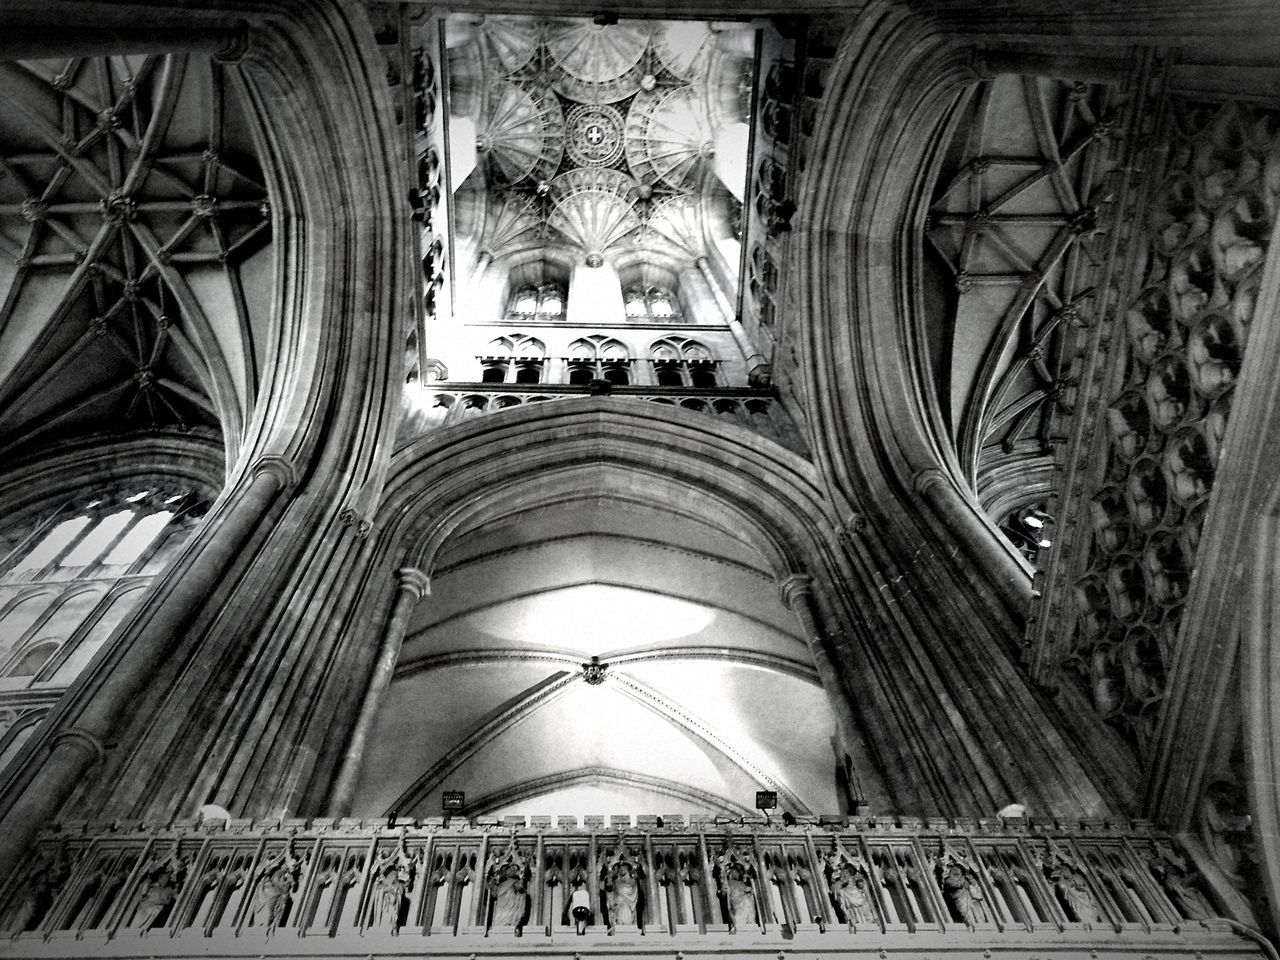 architecture, built structure, place of worship, religion, spirituality, low angle view, indoors, ceiling, architectural column, history, no people, travel destinations, day